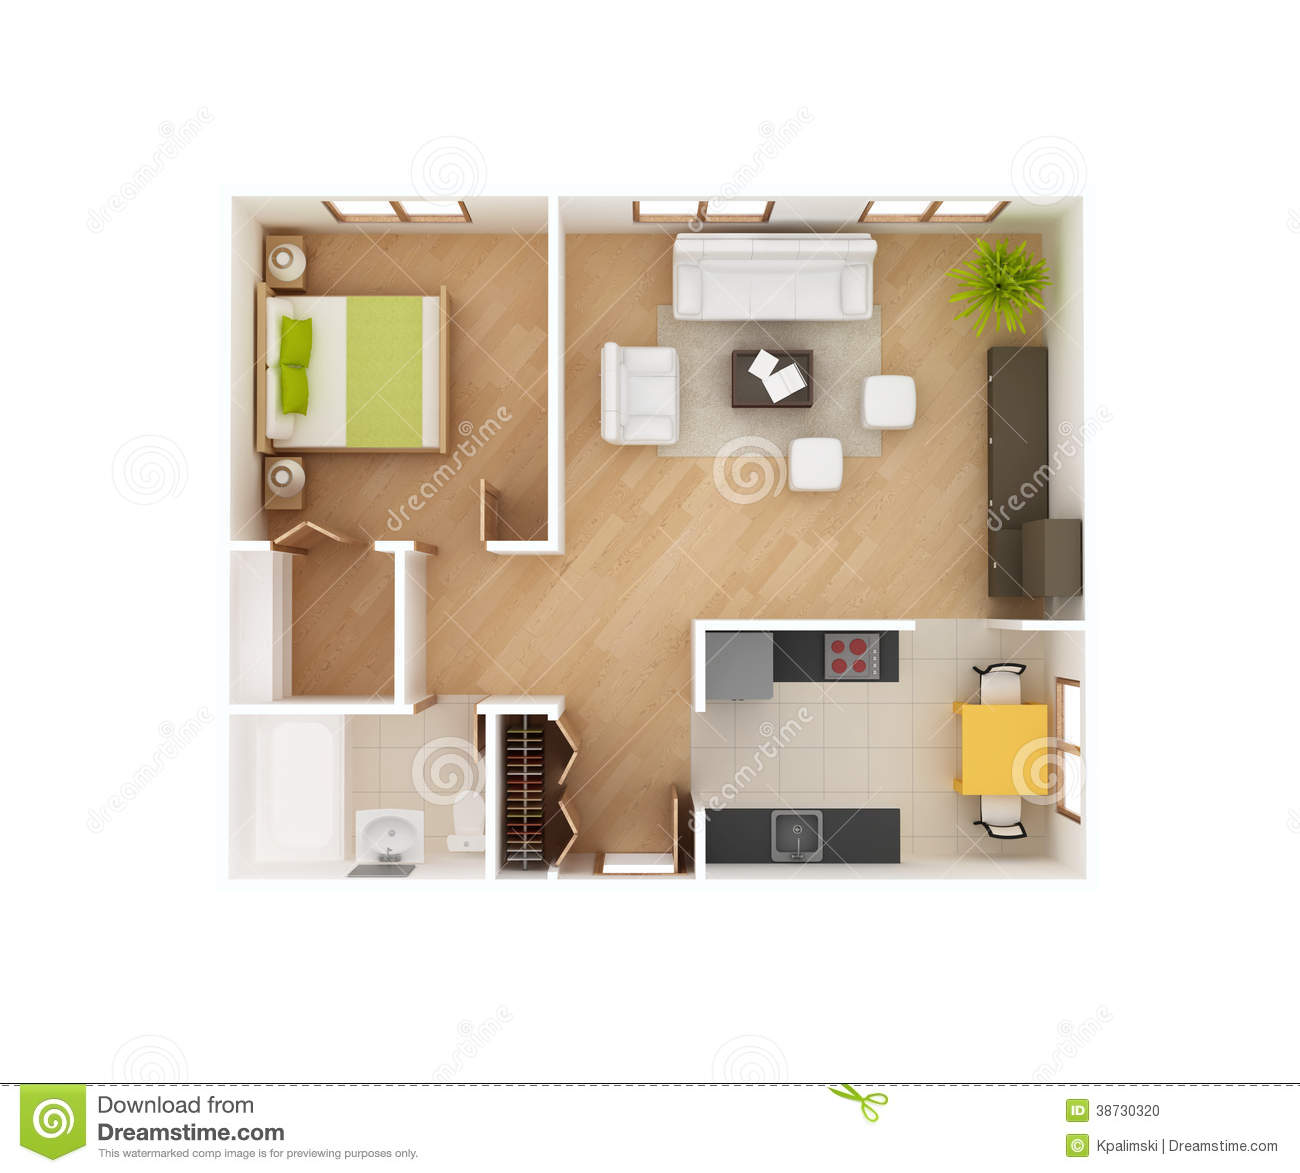 Basic 3d house floor plan top view stock illustration for Home blueprints online